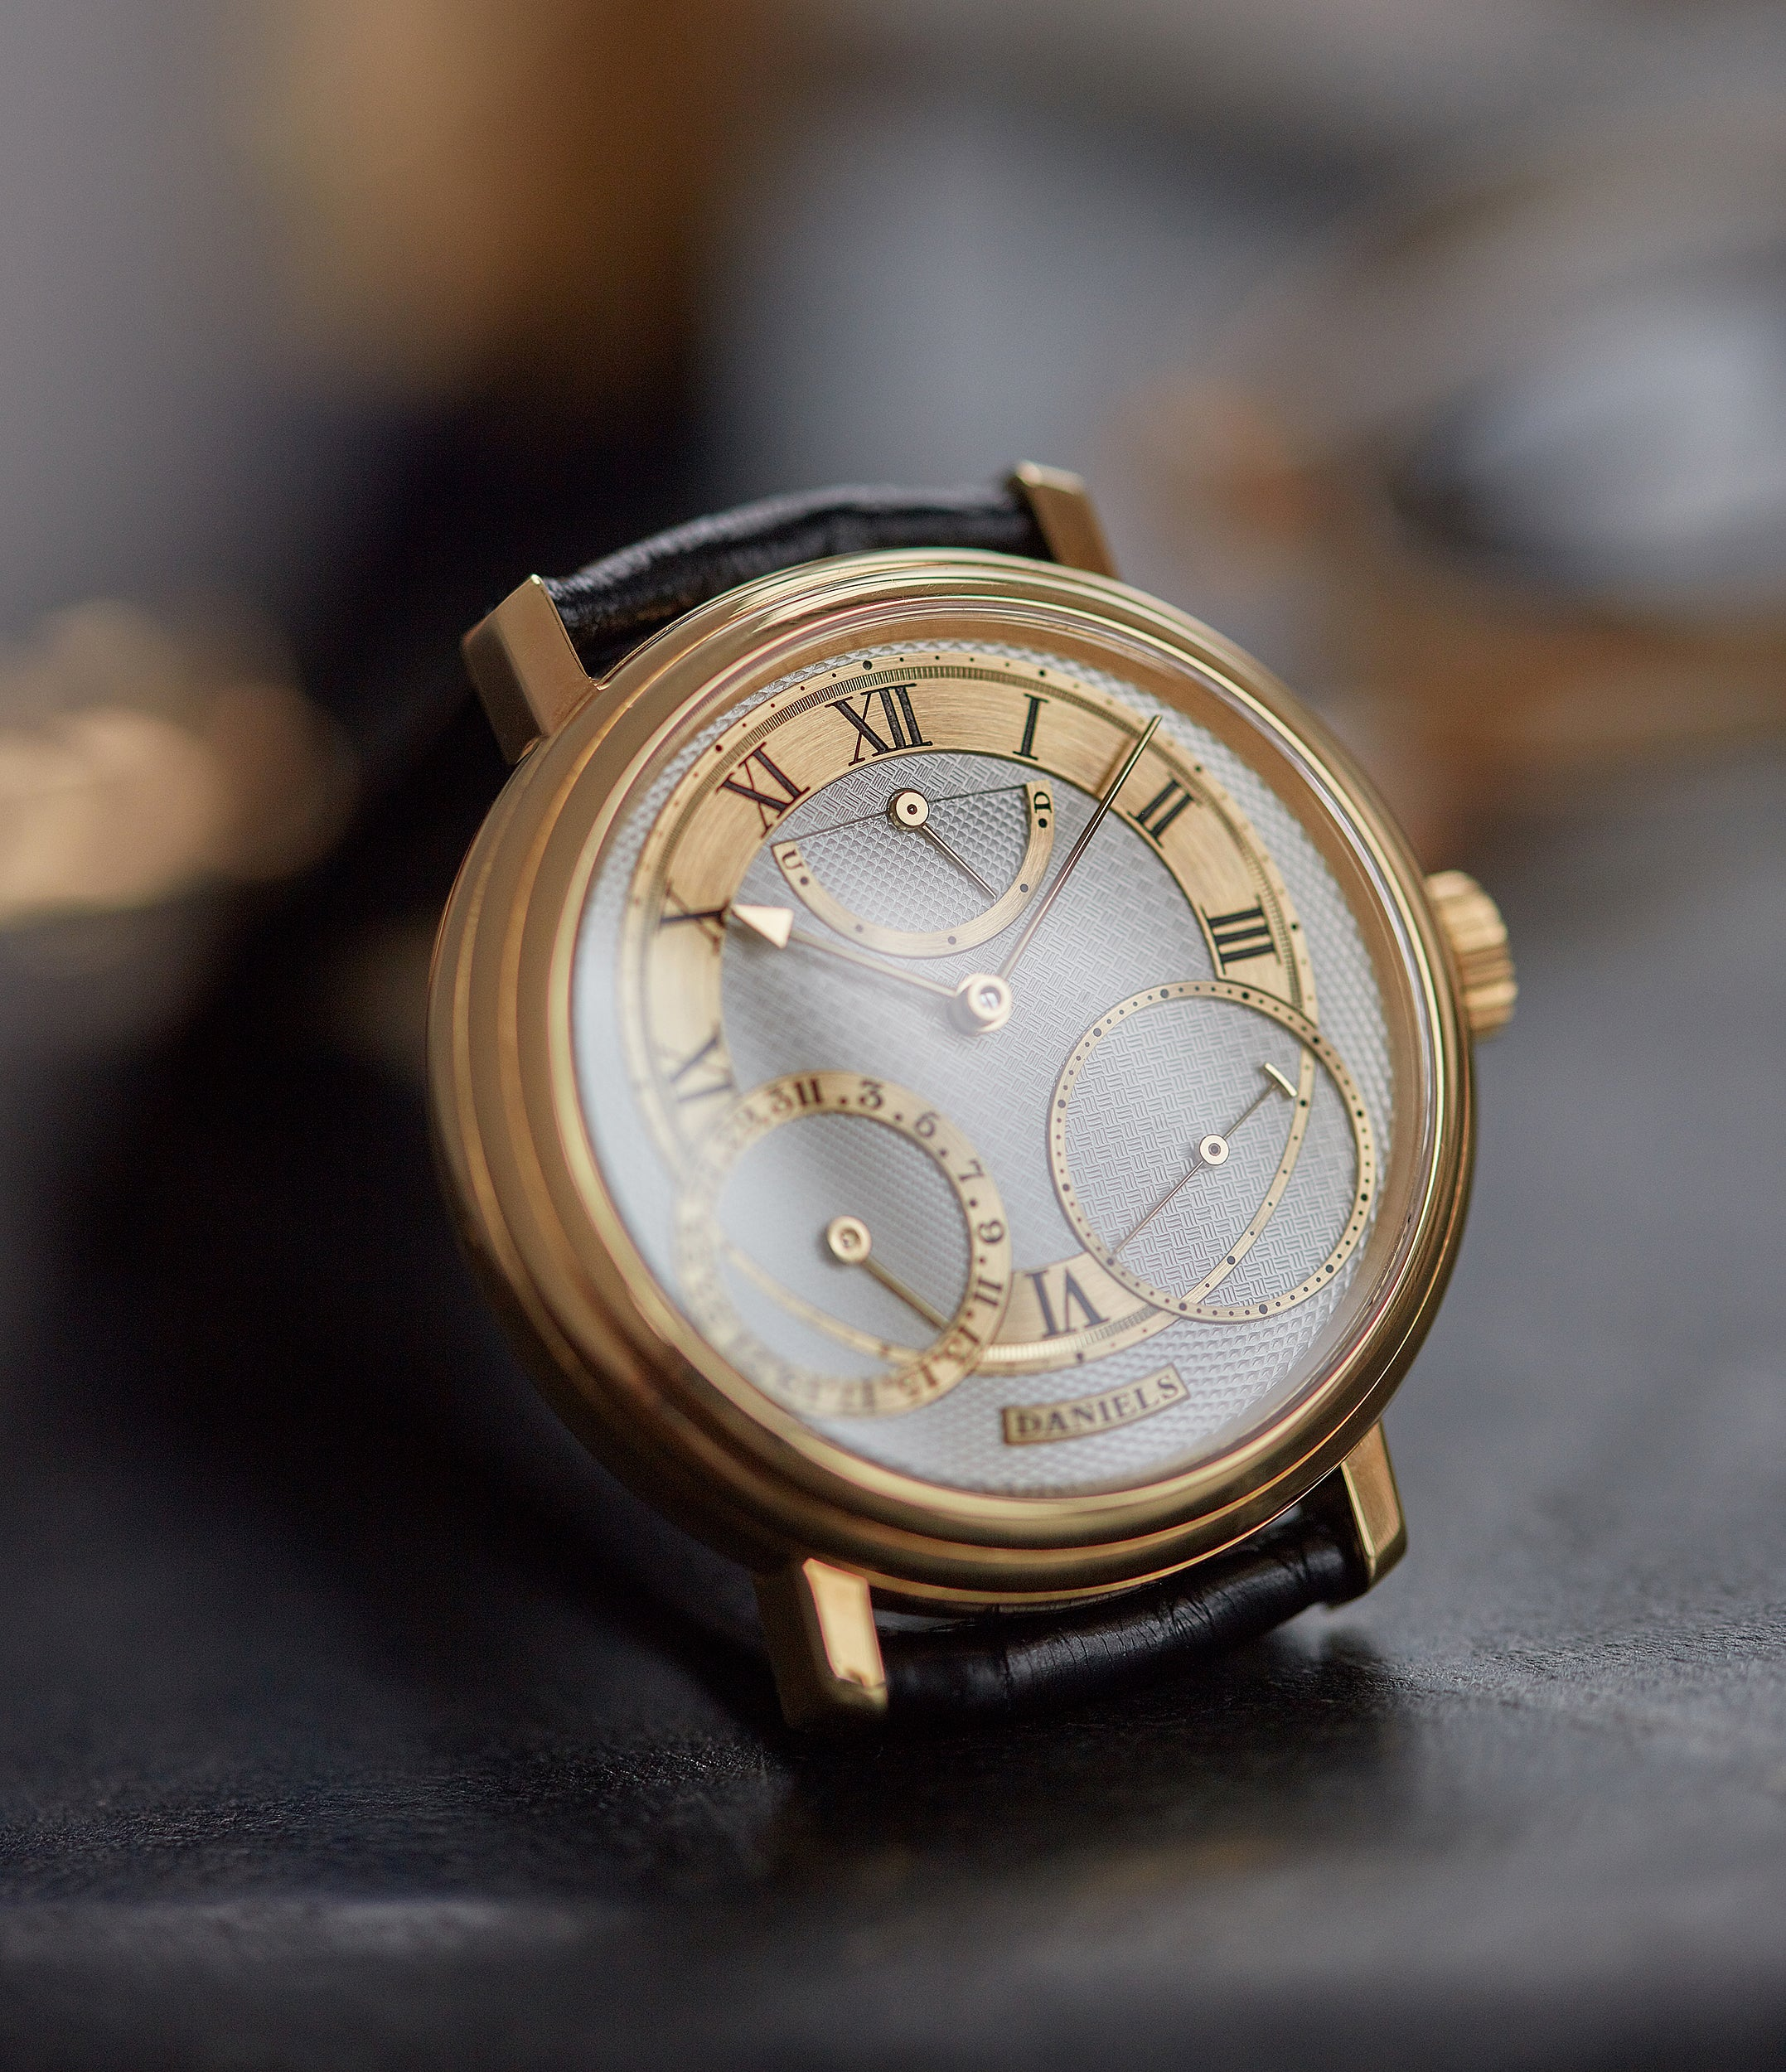 for sale George Daniels Anniversary watch by Roger W. Smith independent watchmaker yellow gold rare watch for sale online A Collected Man London with signed papers